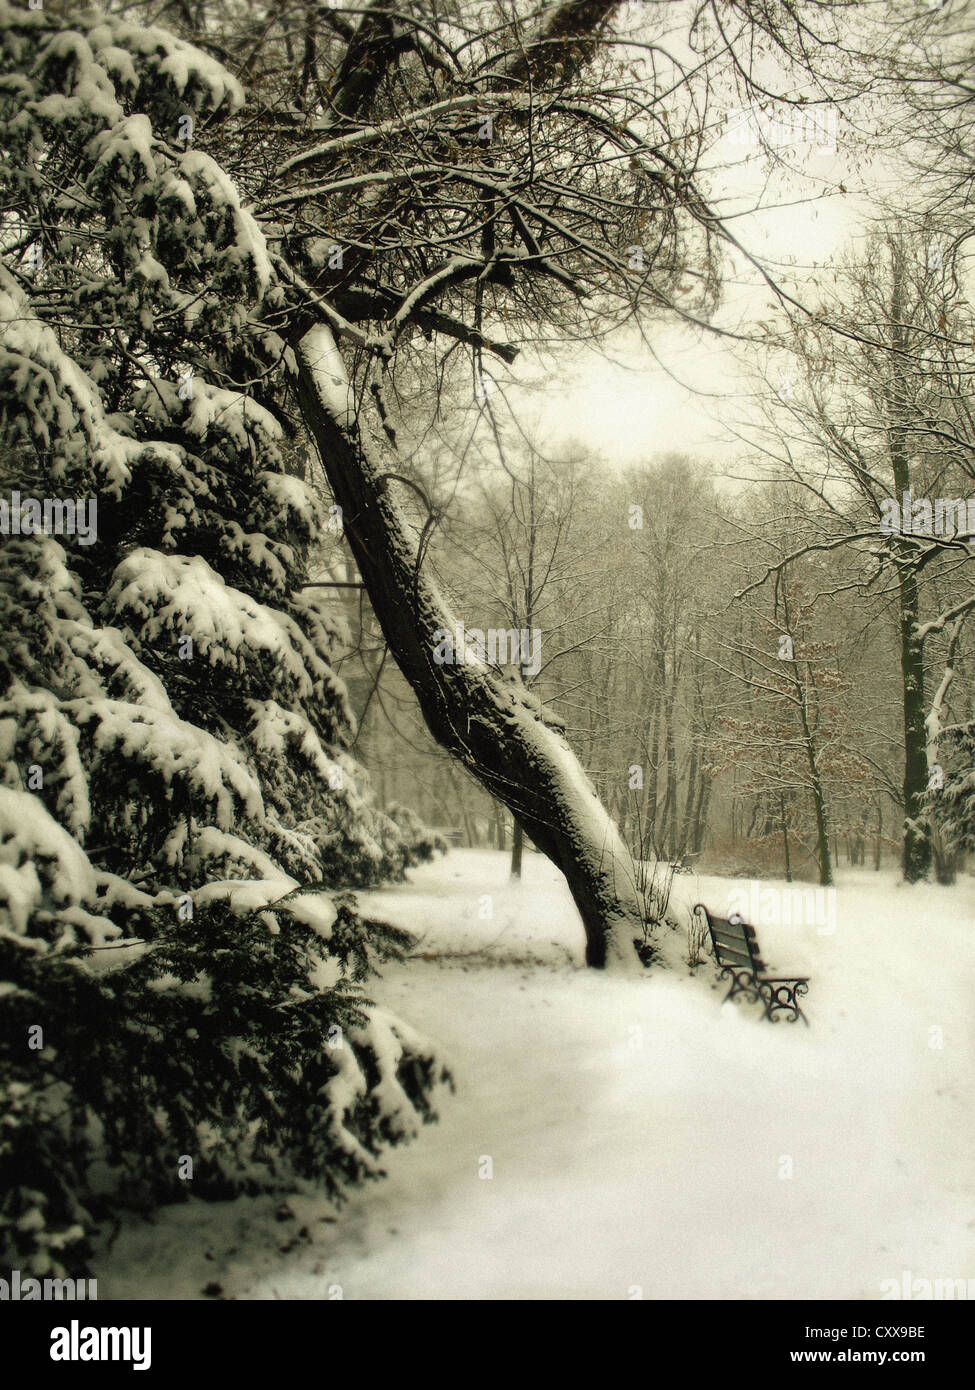 a landscape with a garden in winter, with a little bench on the right, covered with snow, and a tree in the centre. - Stock Image